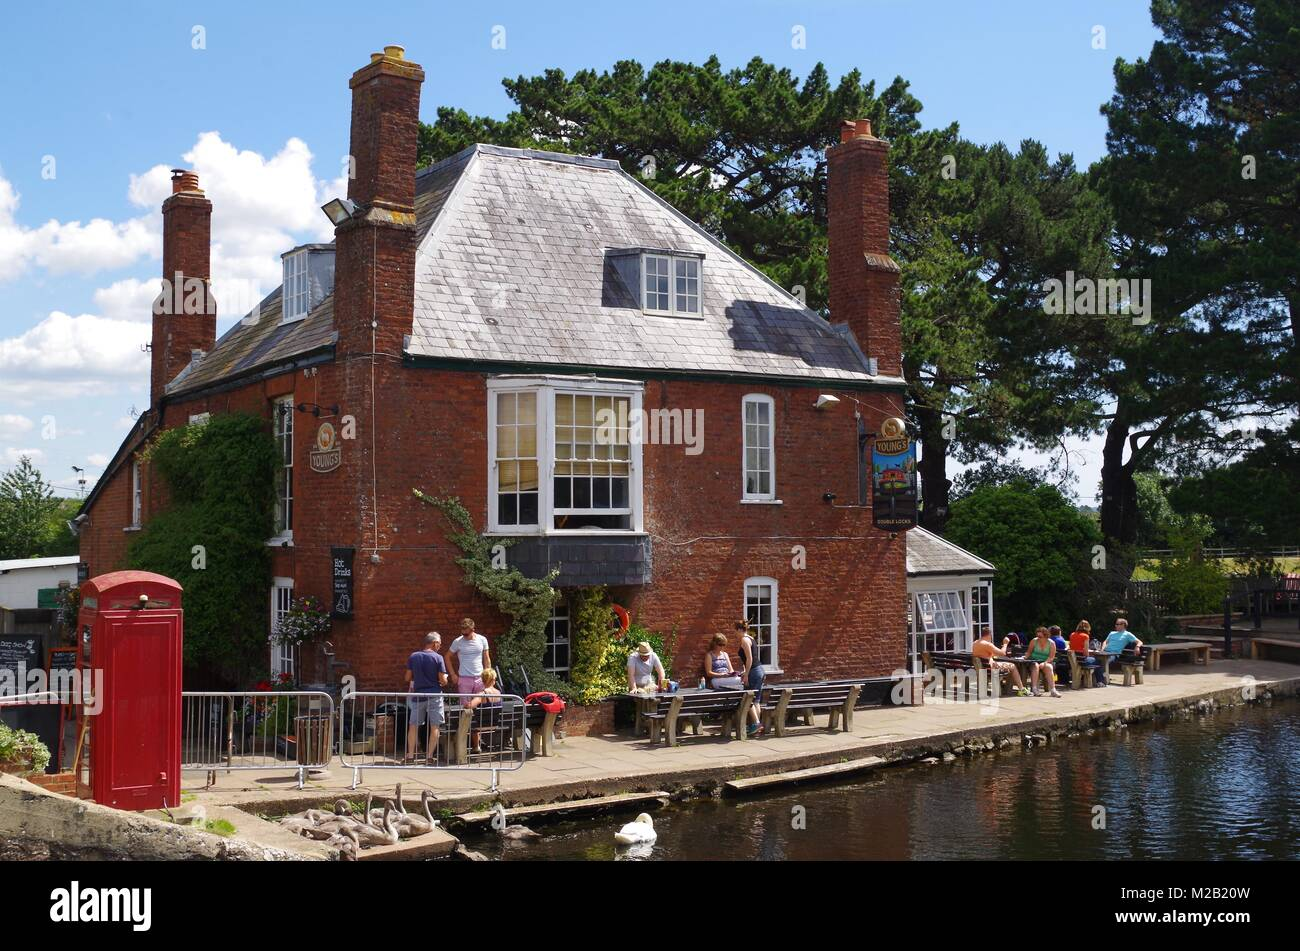 Double Locks 18th Century Lock Keepers House and Inn Pub on the Exeter Ship Canal in High Summer. Devon, UK. 2015. - Stock Image